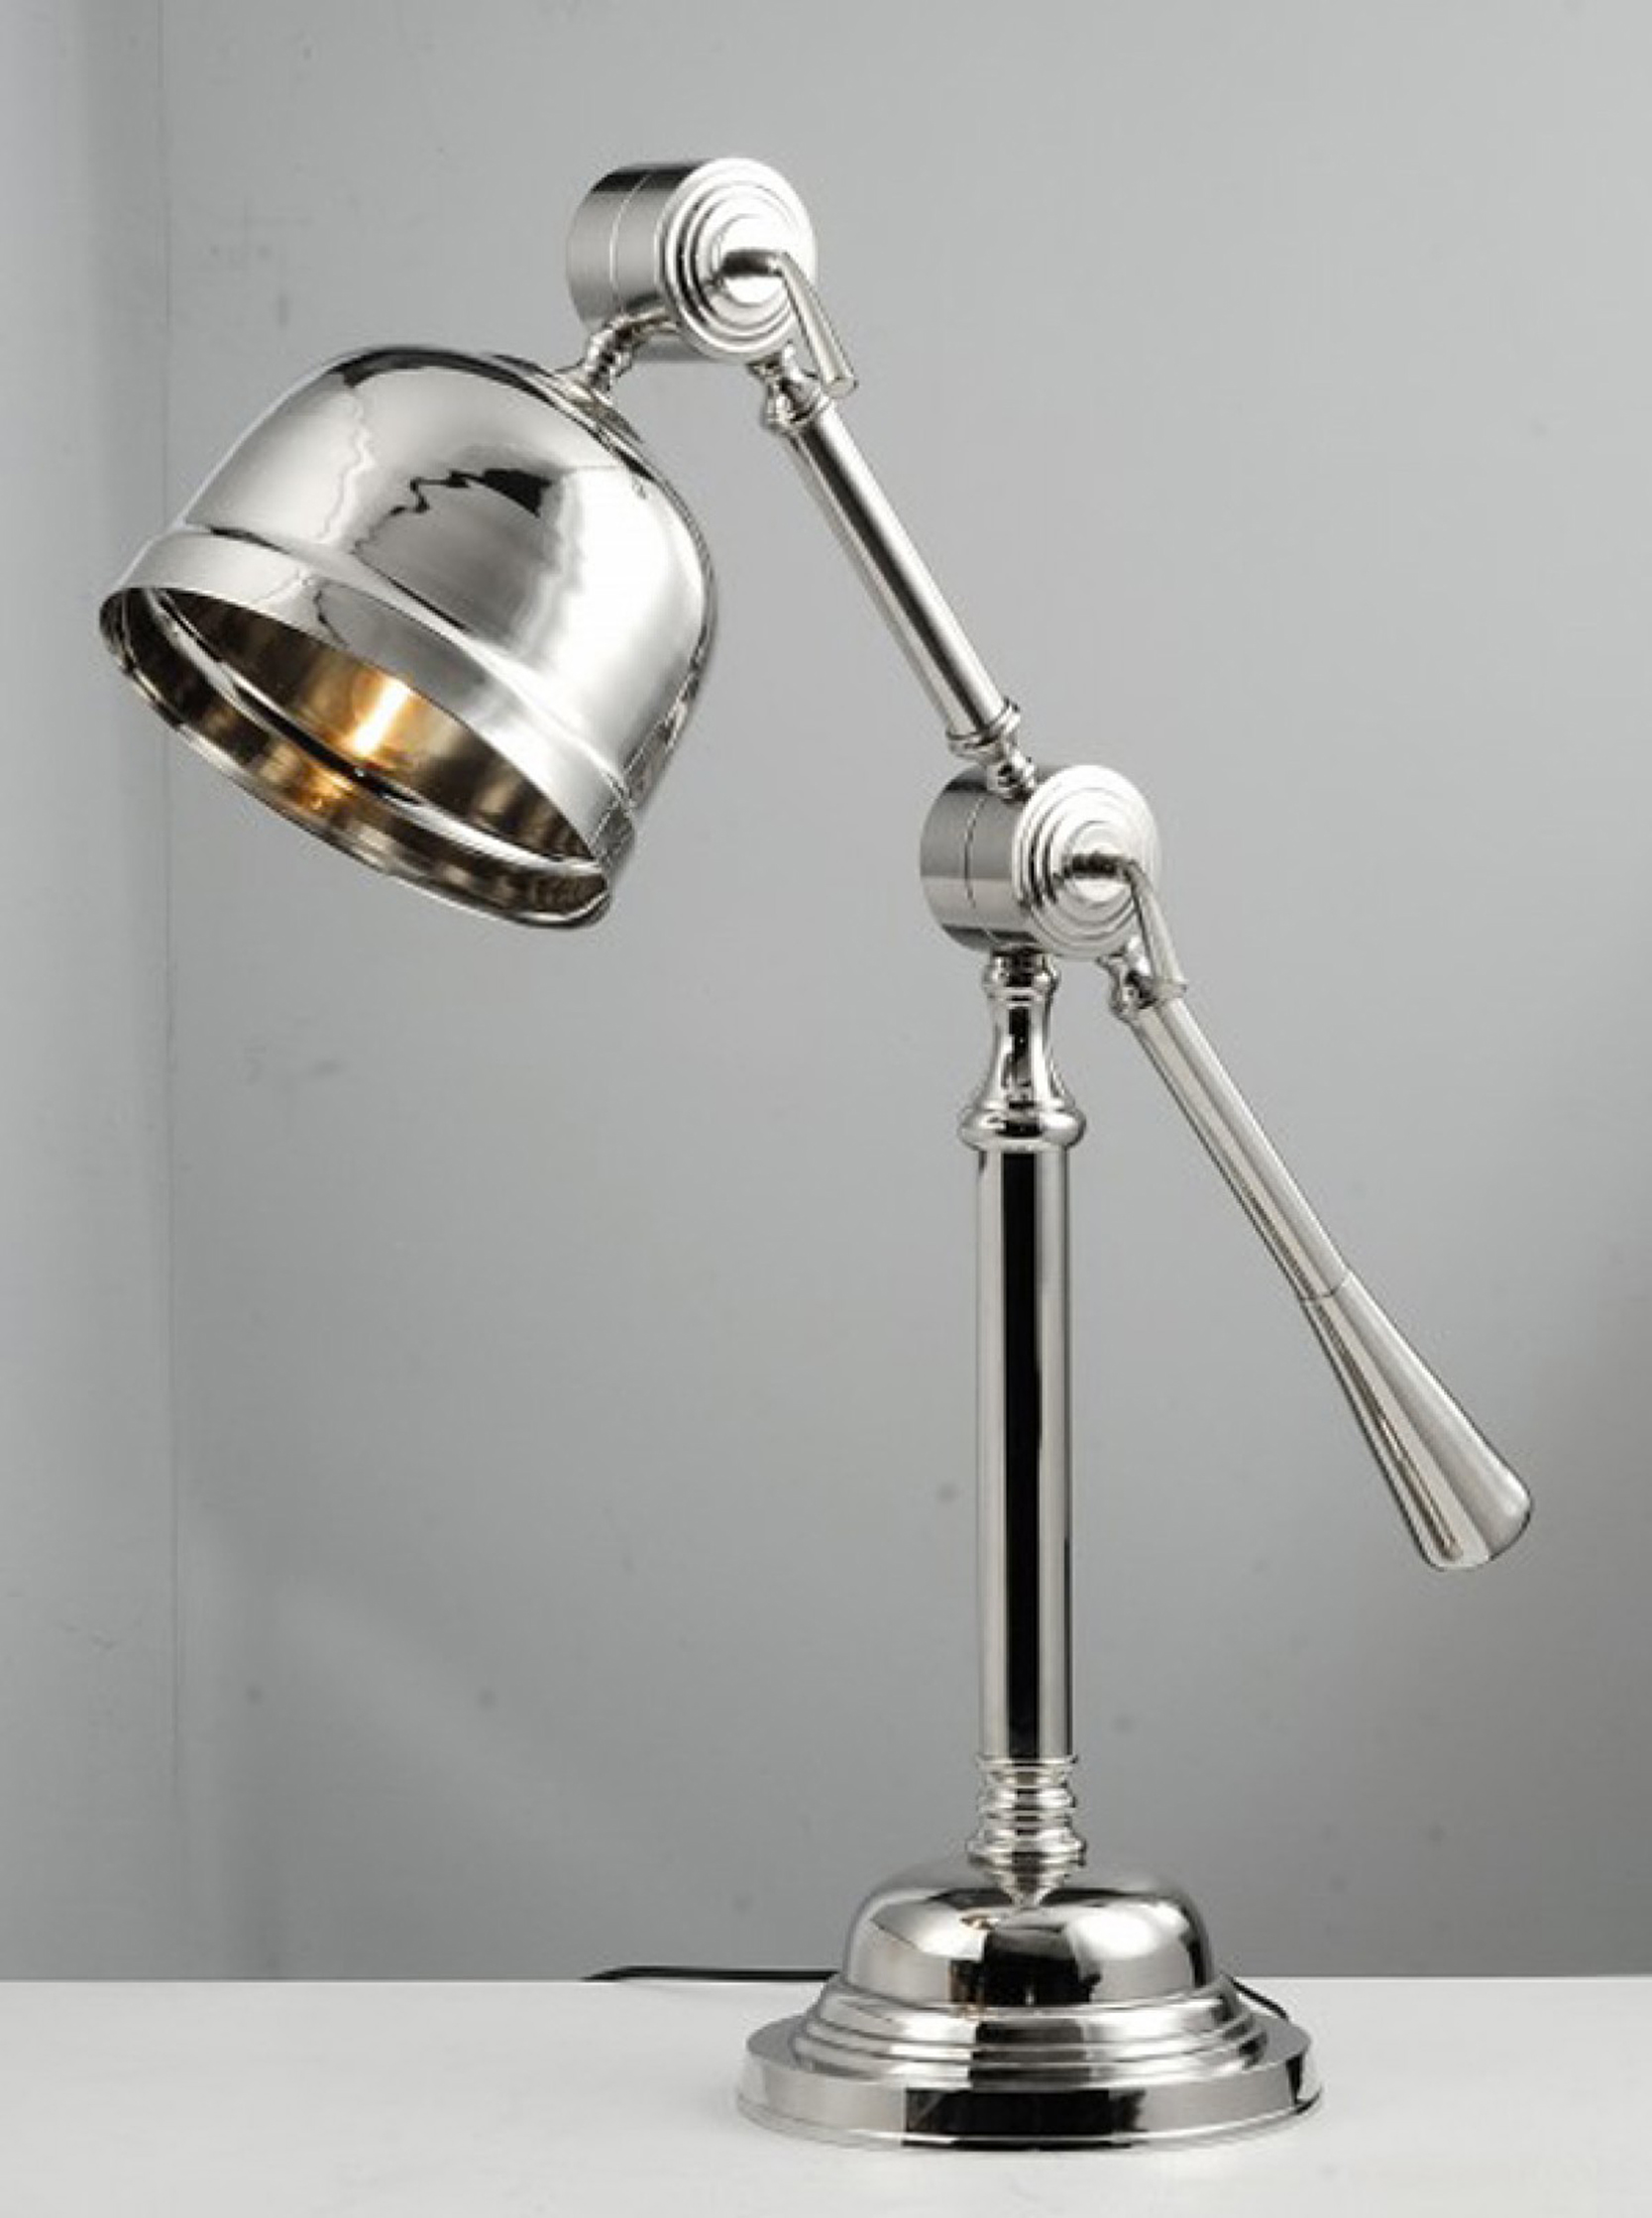 Find a great silver lamp lamp deal at Advanced Interior Designs